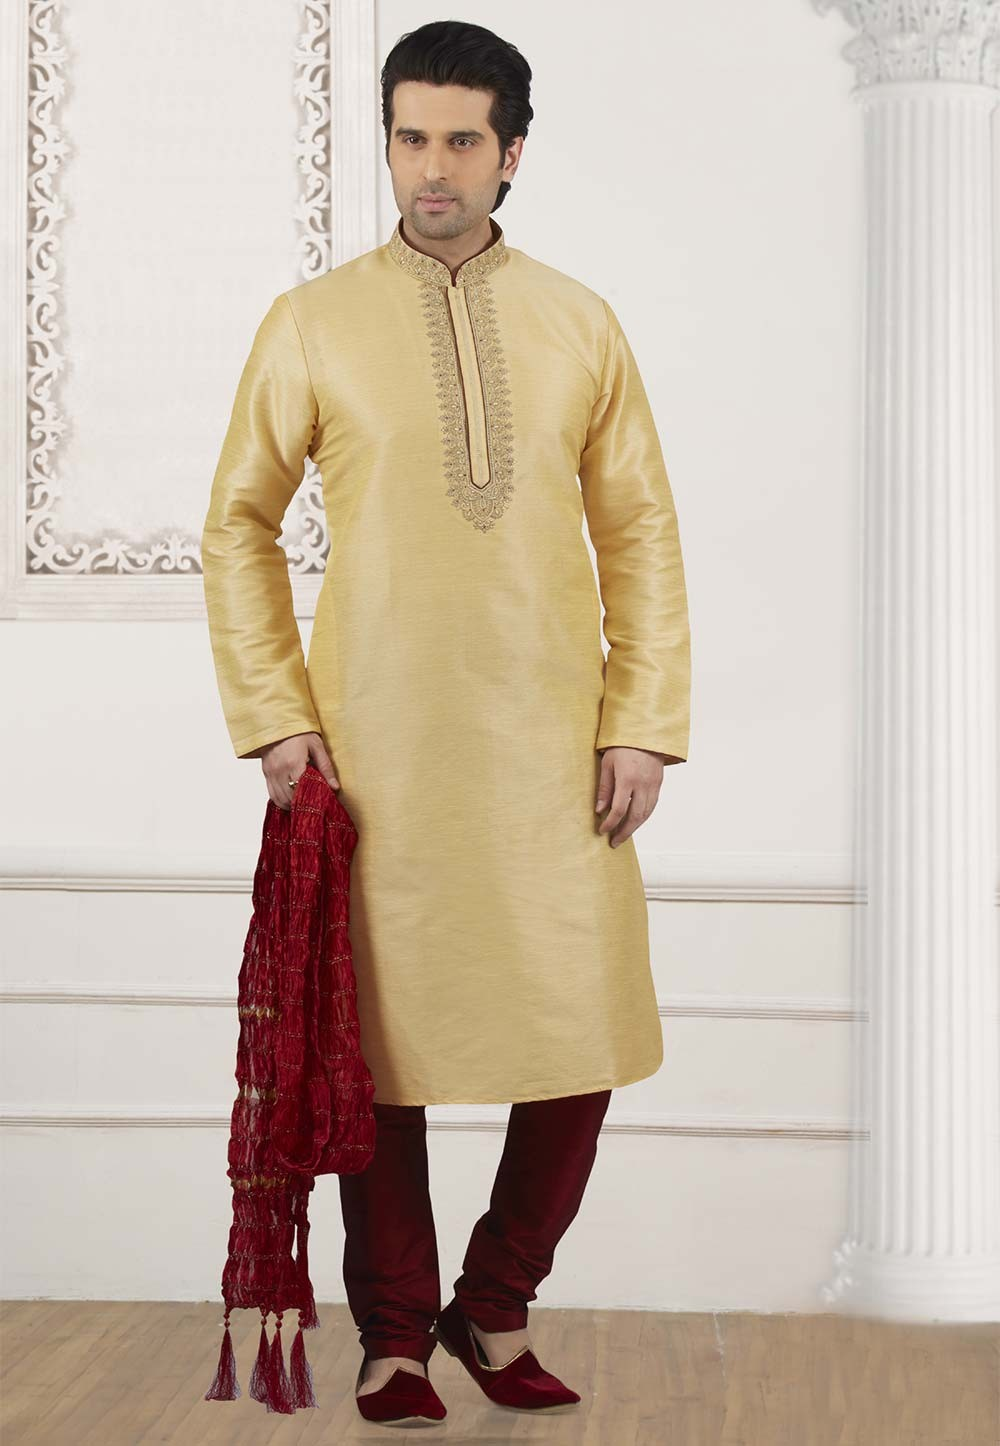 Golden Colour Indian Designer Kurta Pajama.